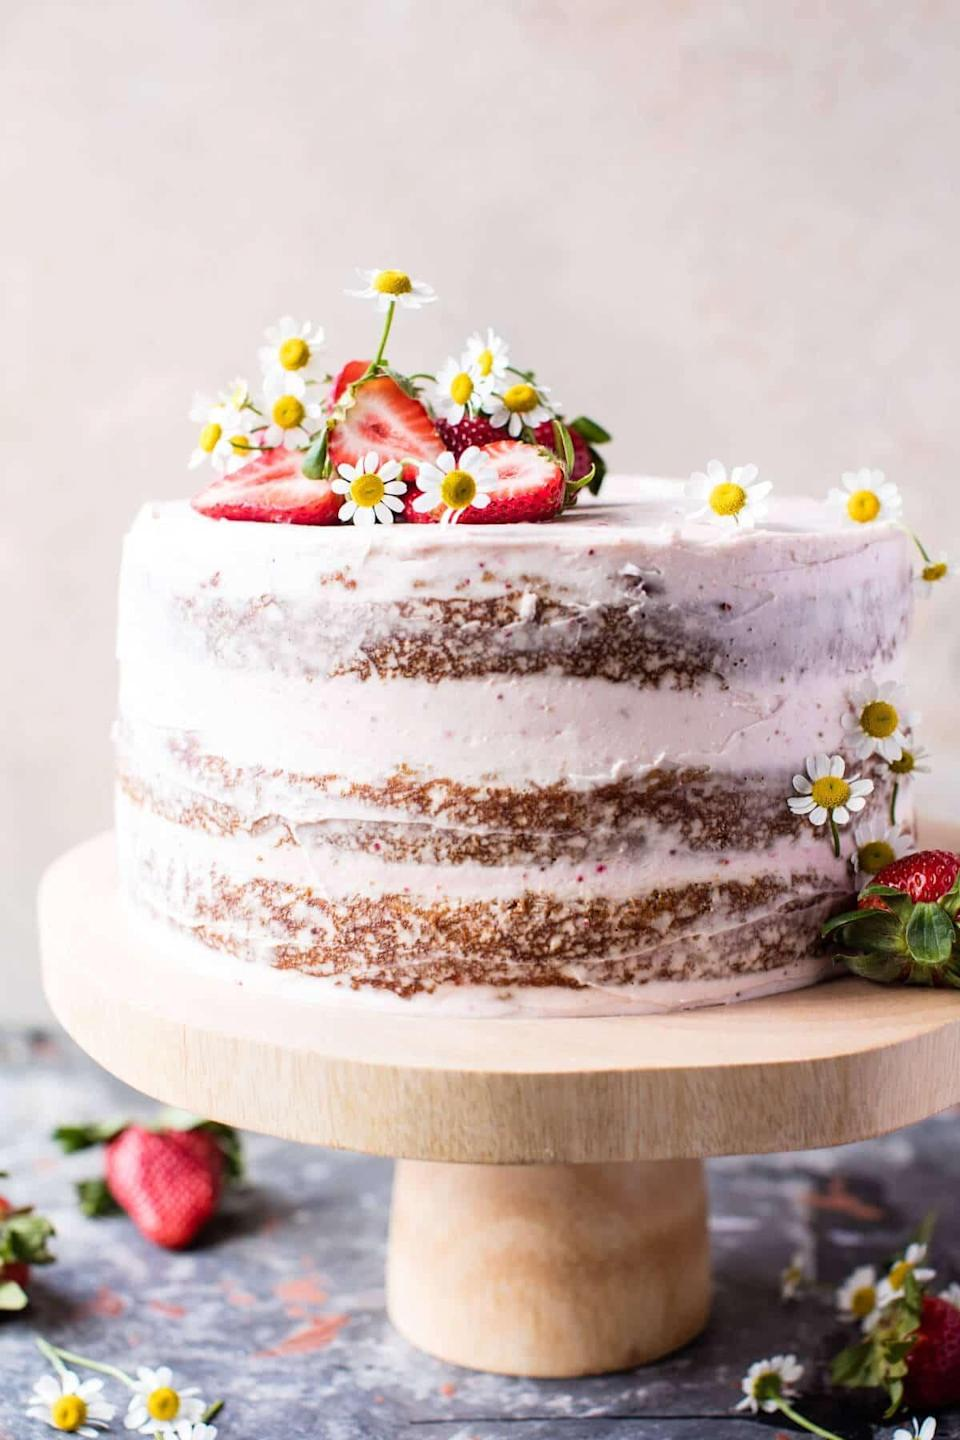 "<p>Bright, beautiful, and bursting with flavor, this delightful cake tastes like a sweet spring day. In every bite, you'll get to taste flavors of strawberry, coconut, and carrot that work together with a rich mascarpone buttercream that's enough to make anyone's heart skip a beat. Top it off with seasonal flowers, and your work here is done.</p> <p><strong>Get the recipe</strong>: <a href=""https://www.halfbakedharvest.com/strawberry-coconut-carrot-cake-with-mascarpone-buttercream/"" class=""link rapid-noclick-resp"" rel=""nofollow noopener"" target=""_blank"" data-ylk=""slk:strawberry coconut carrot cake with mascarpone buttercream"">strawberry coconut carrot cake with mascarpone buttercream</a></p>"